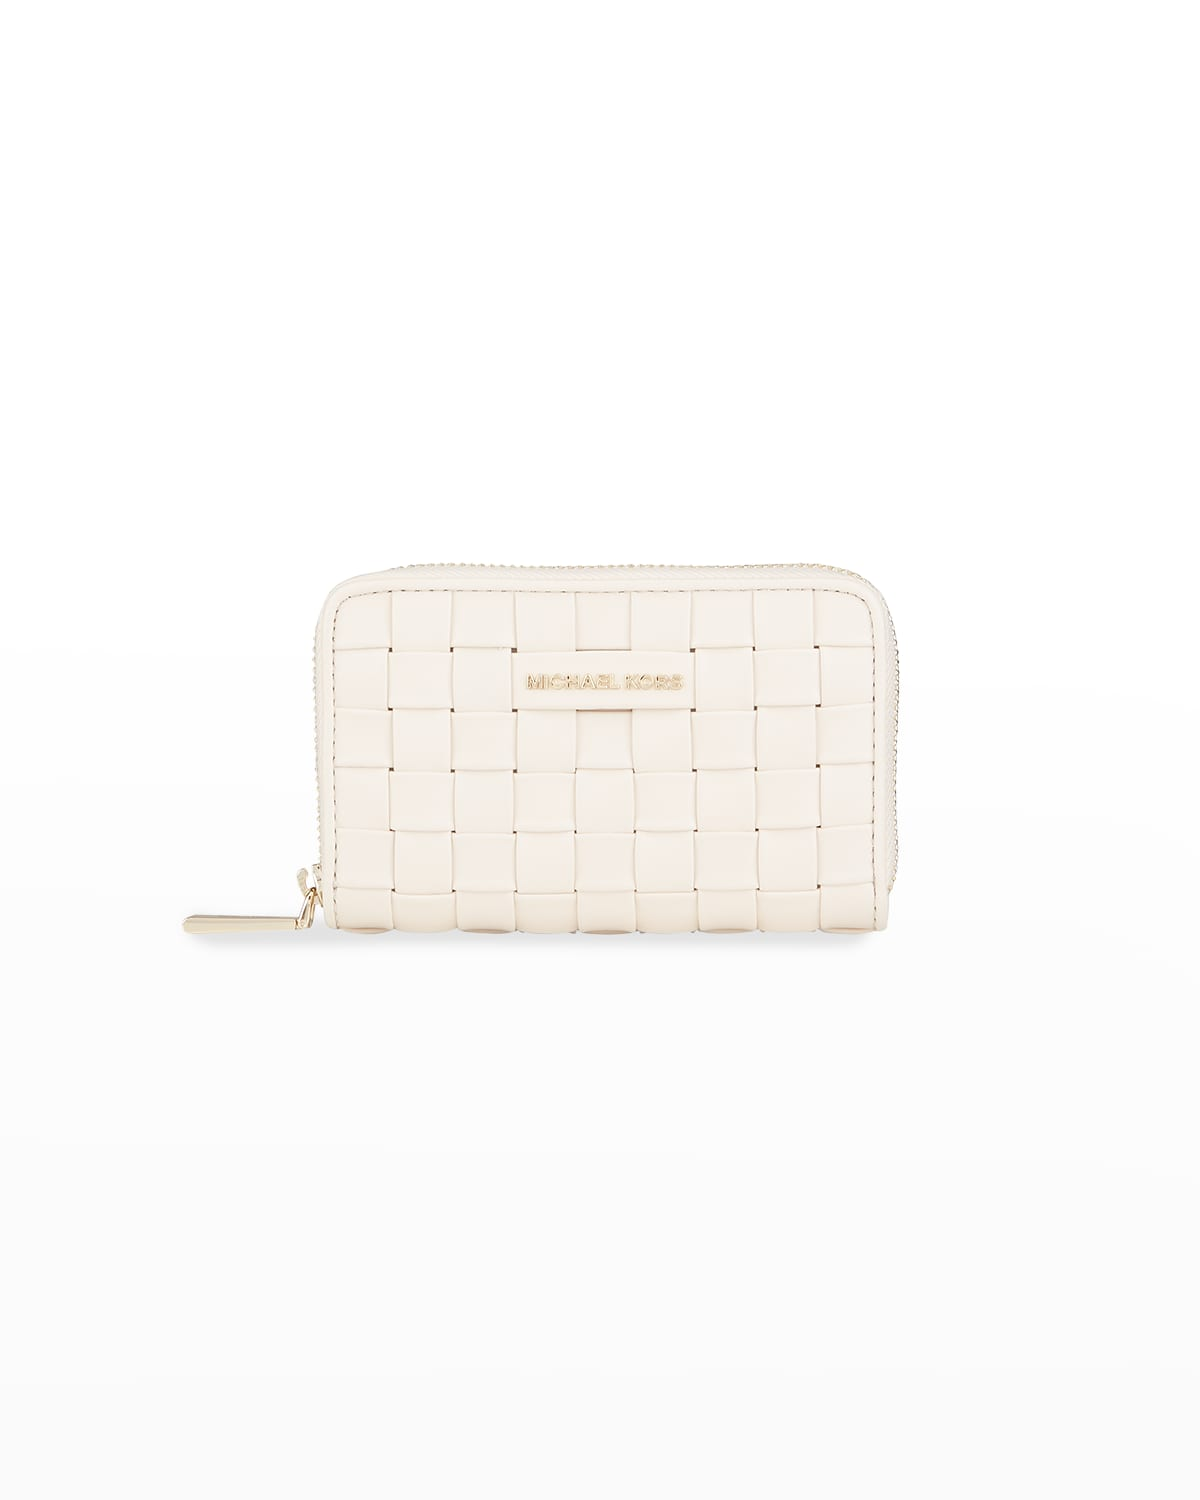 Jet Set Woven Leather Zip Card Case